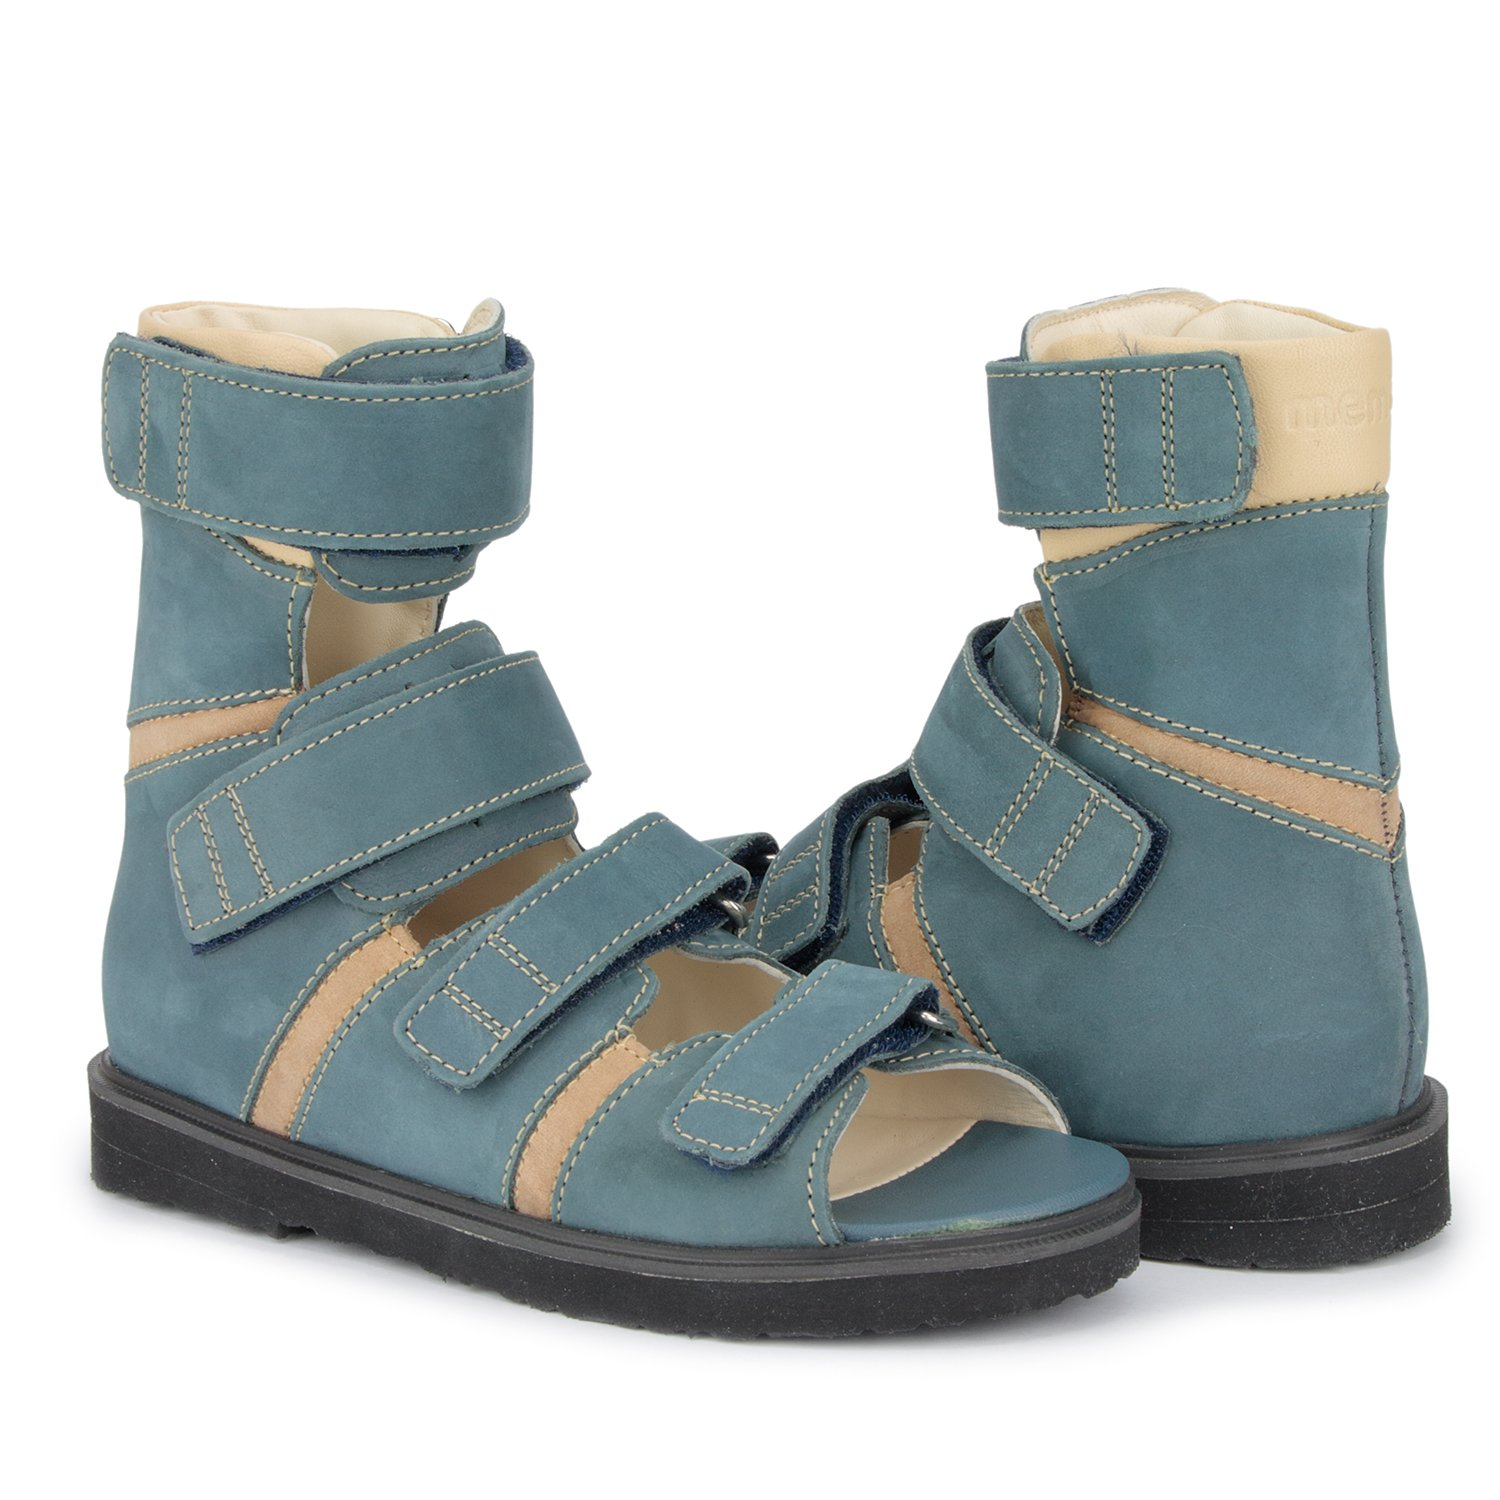 Memo Basic 1CH Suede CP Kids AFO Brace Sandal, 12.5 Little Kid M (30) by Memo (Image #8)